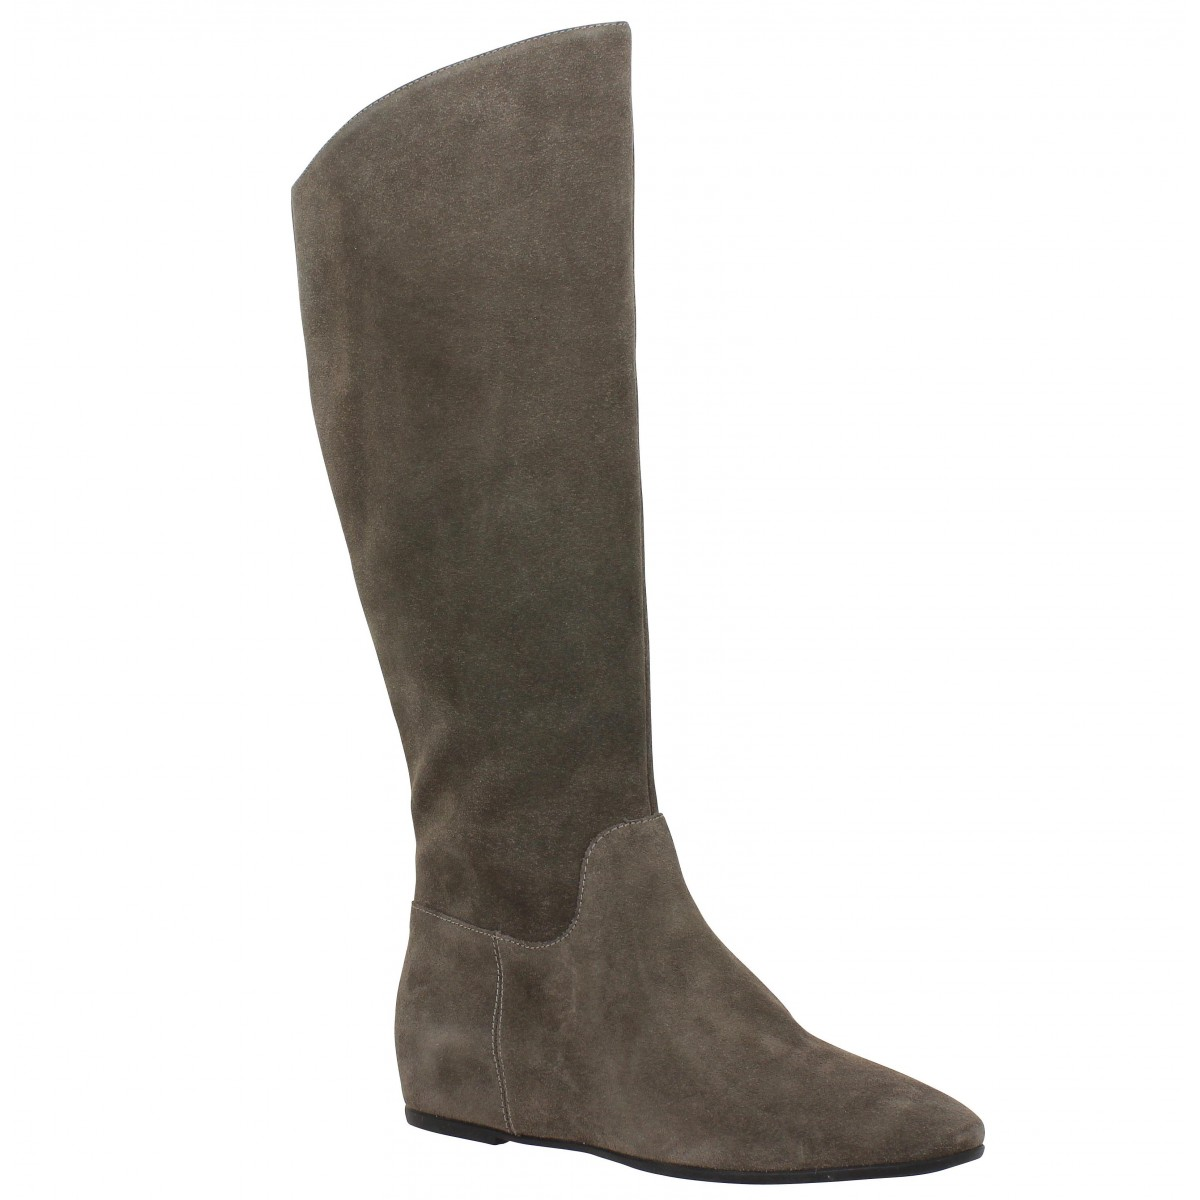 Bottes WHAT FOR 95 Femme Taupe